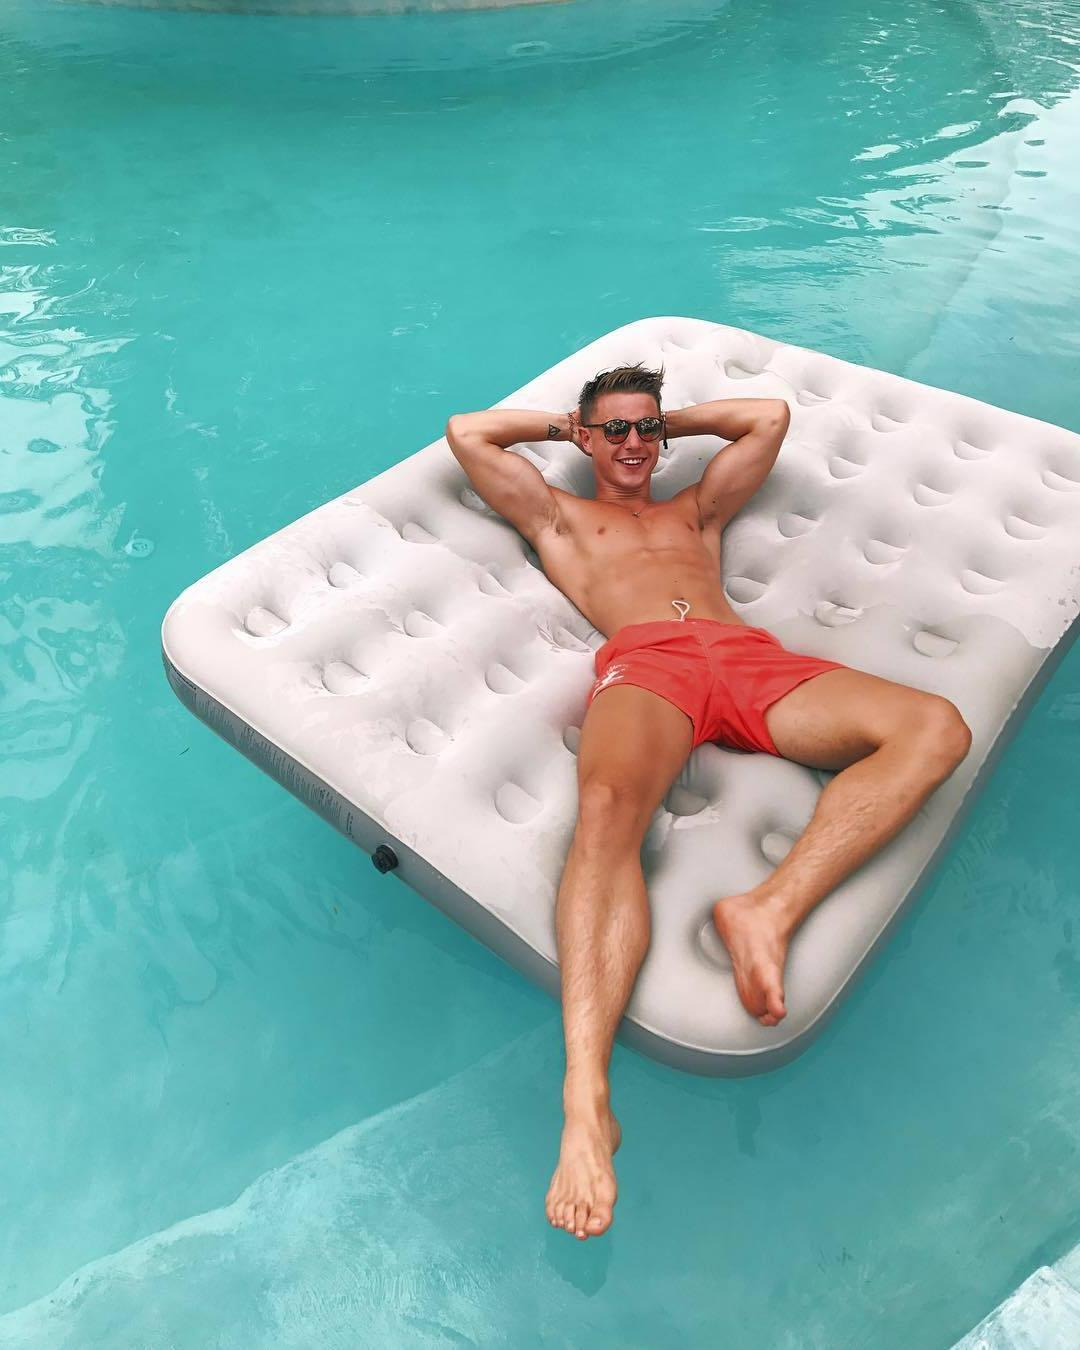 cute-shirtless-fit-dudes-sunglasses-pool-party-chillin-summer